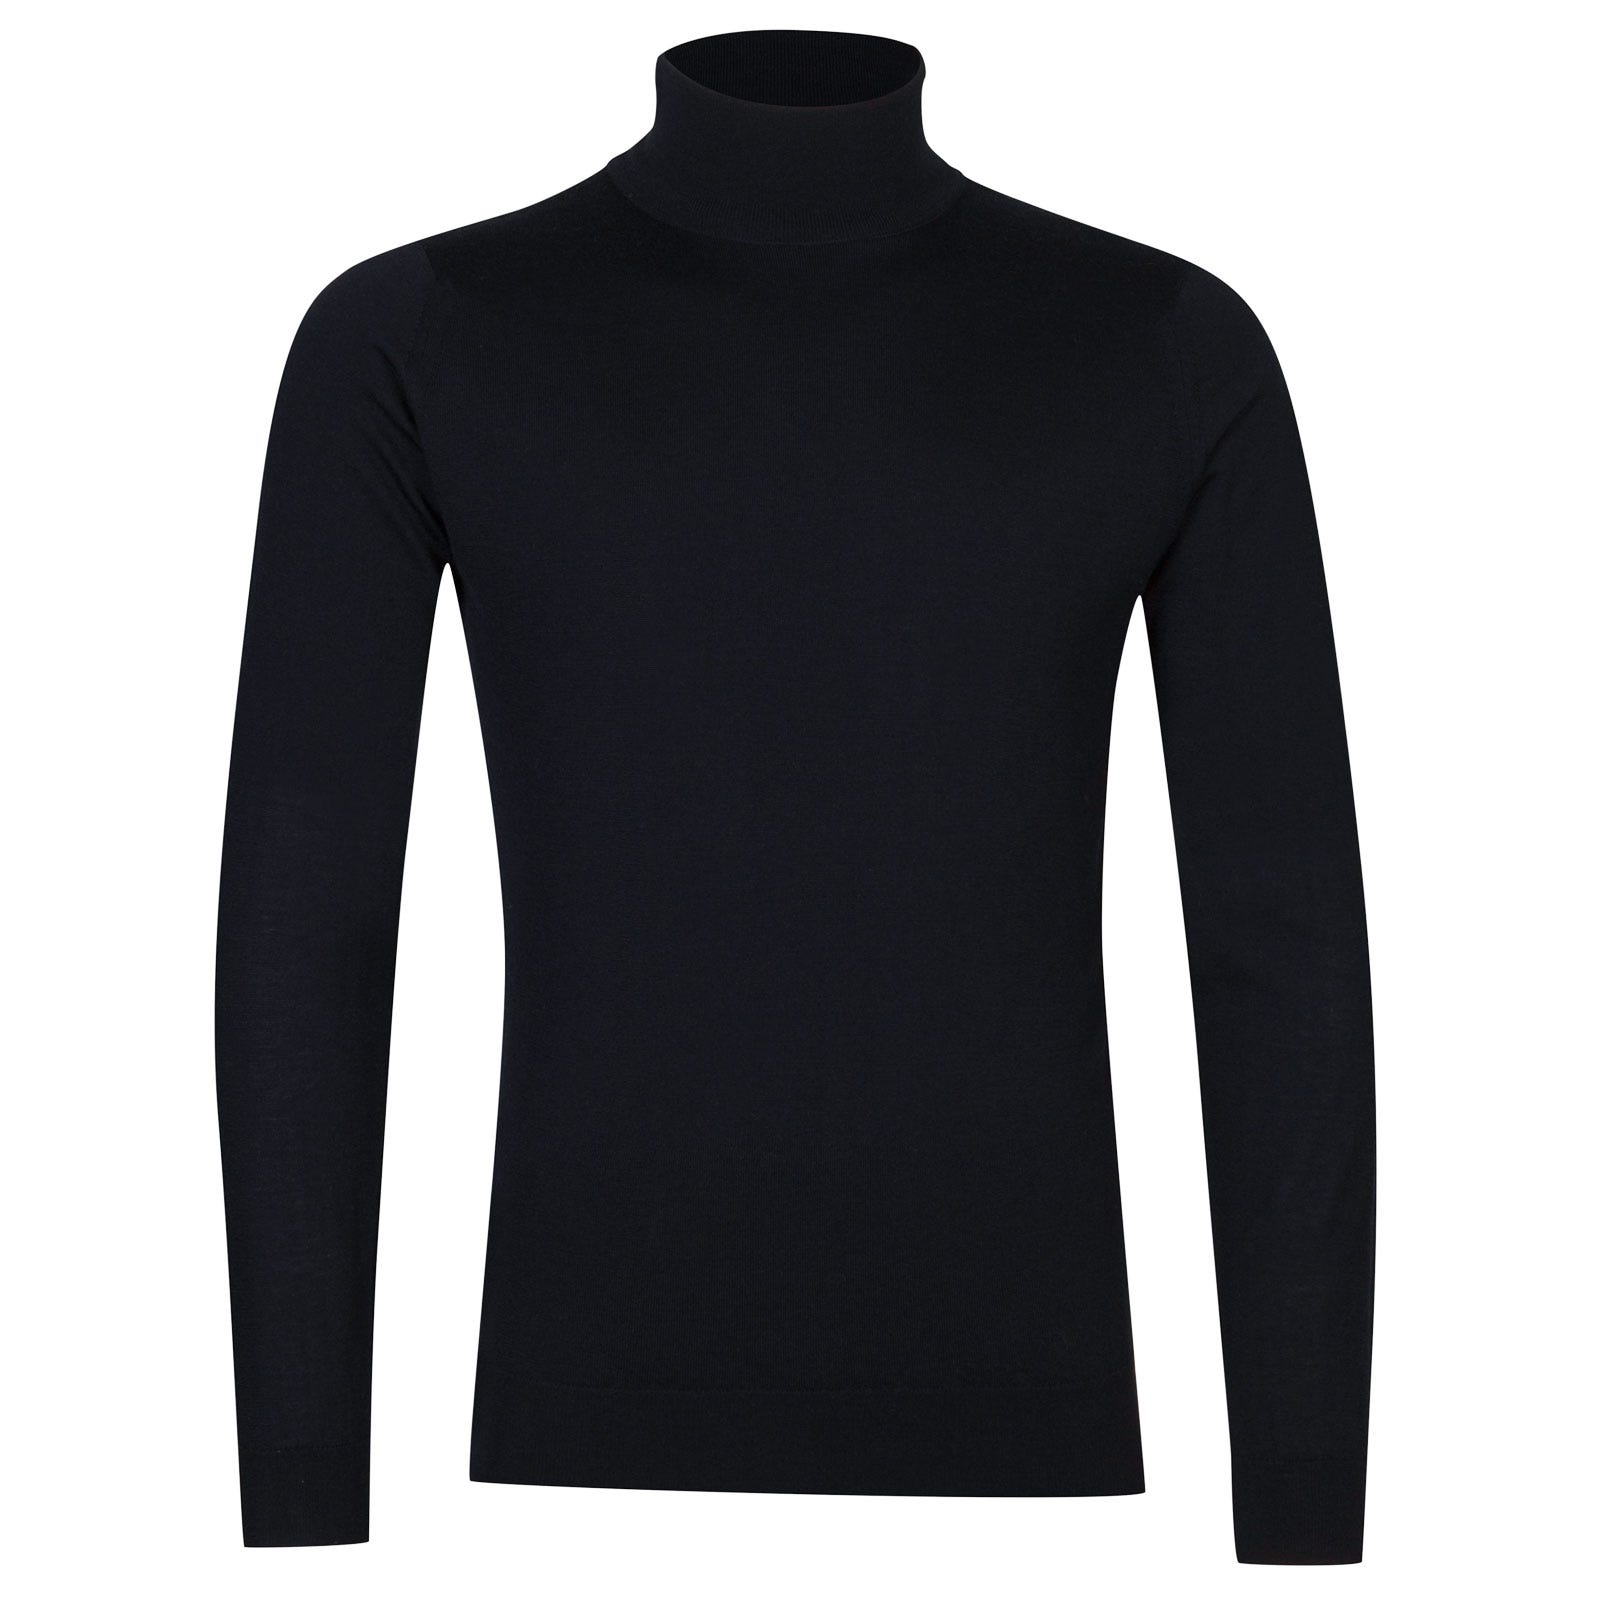 John Smedley arlington Merino Wool and Cashmere Pullover in Midnight-L